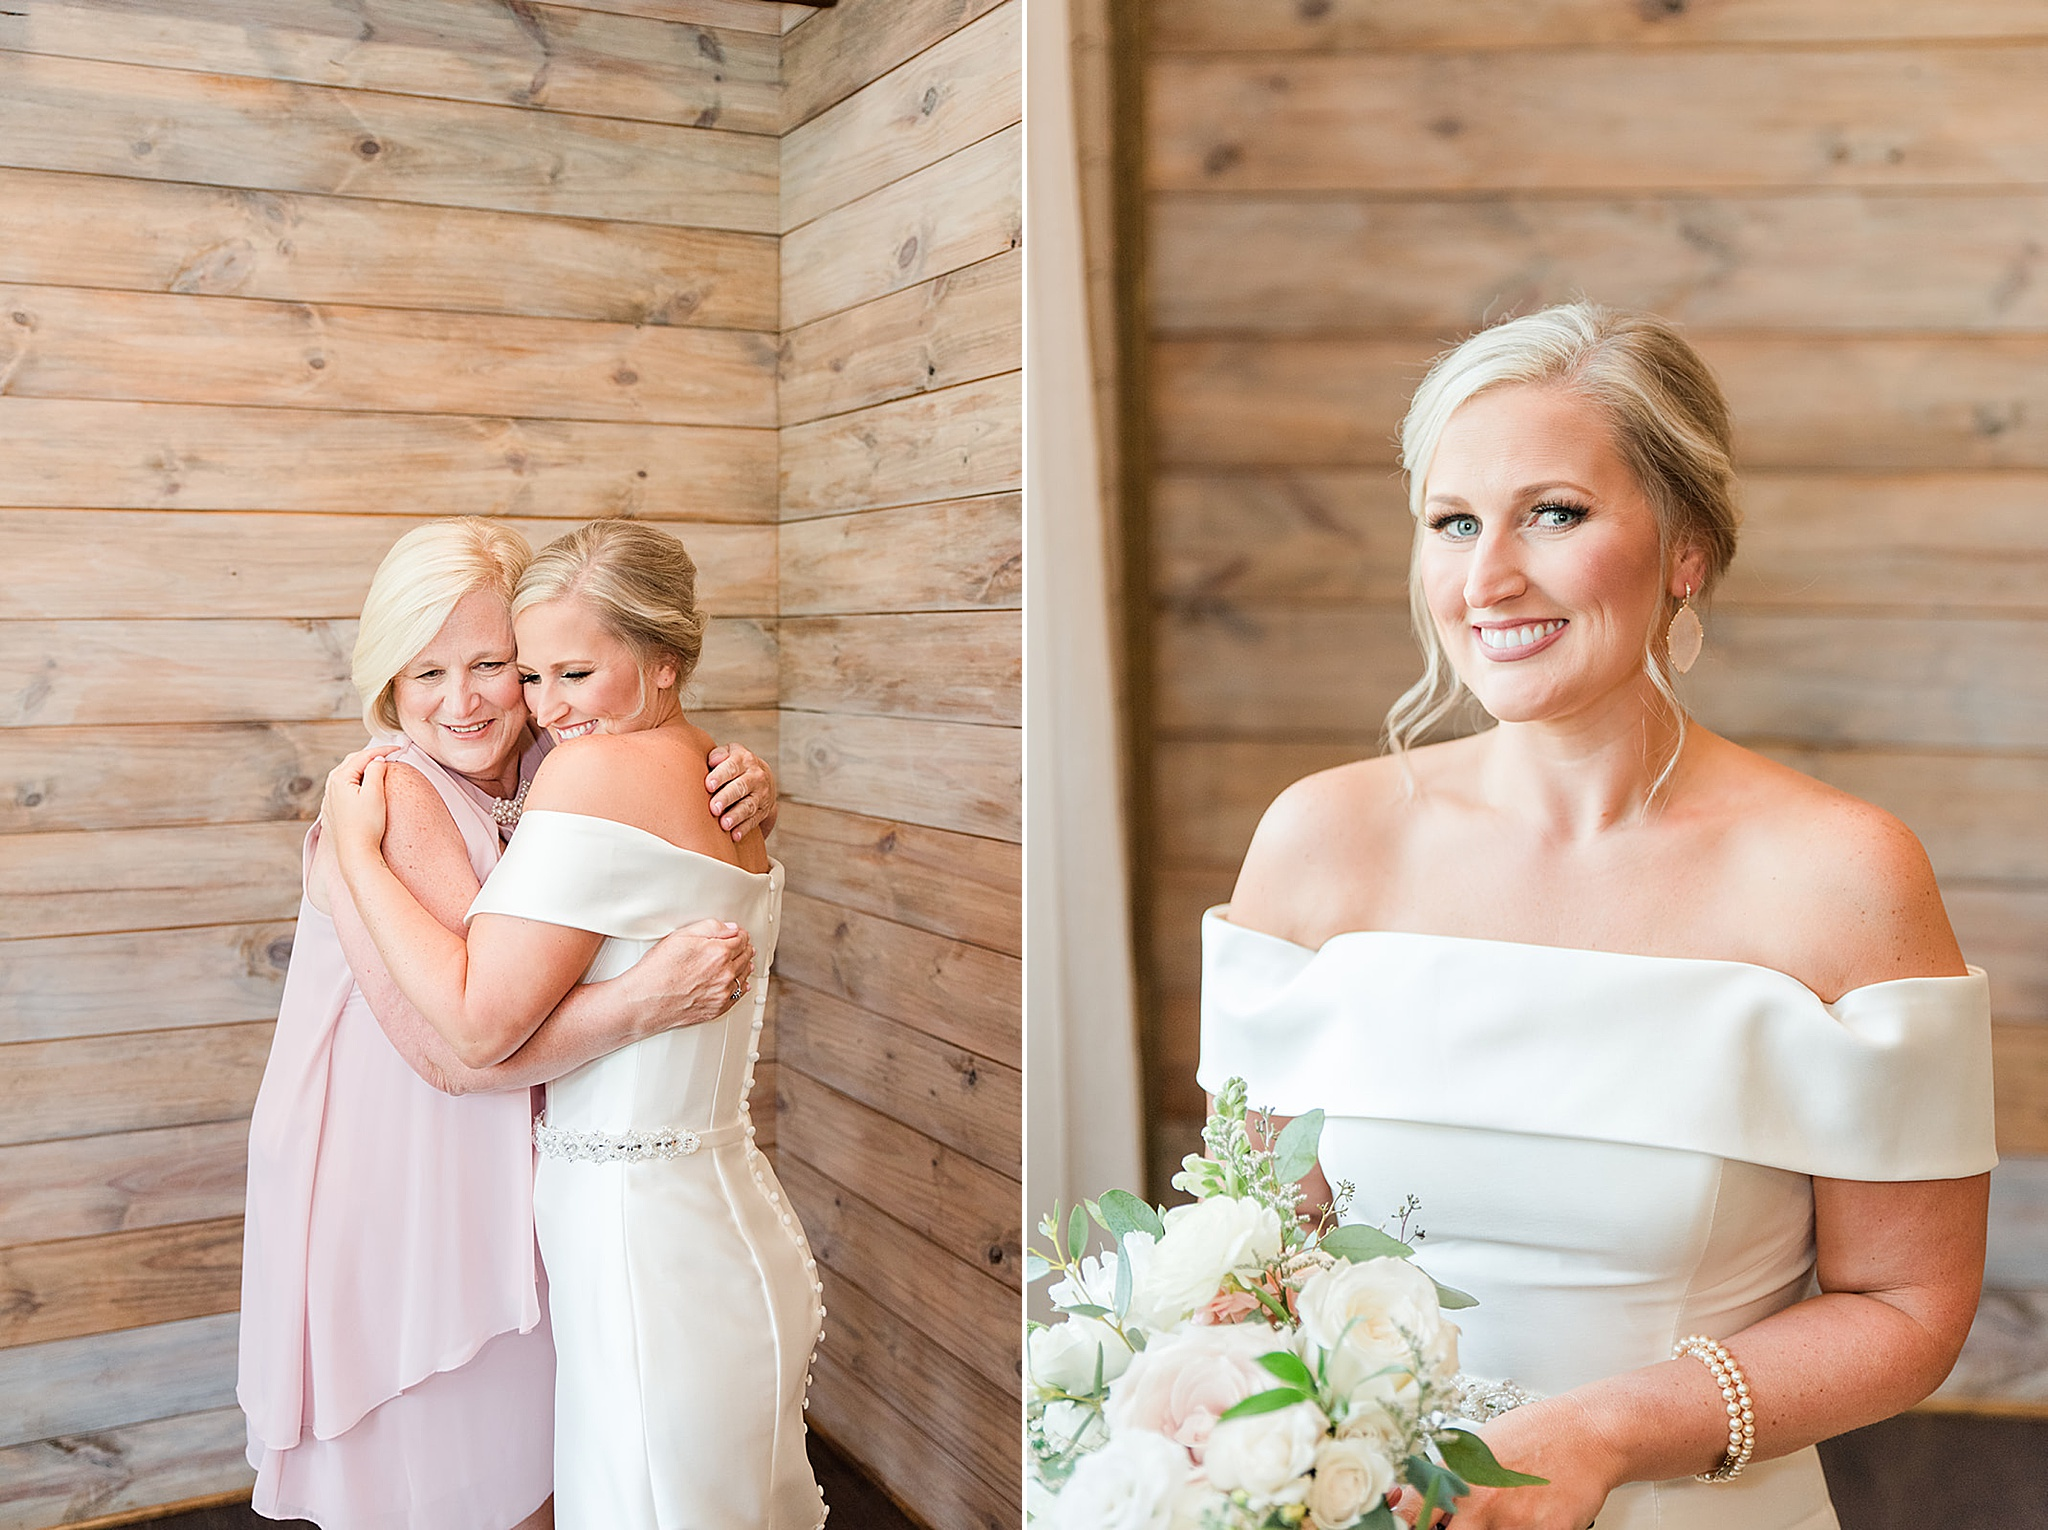 Bride prepares for wedding day with mother